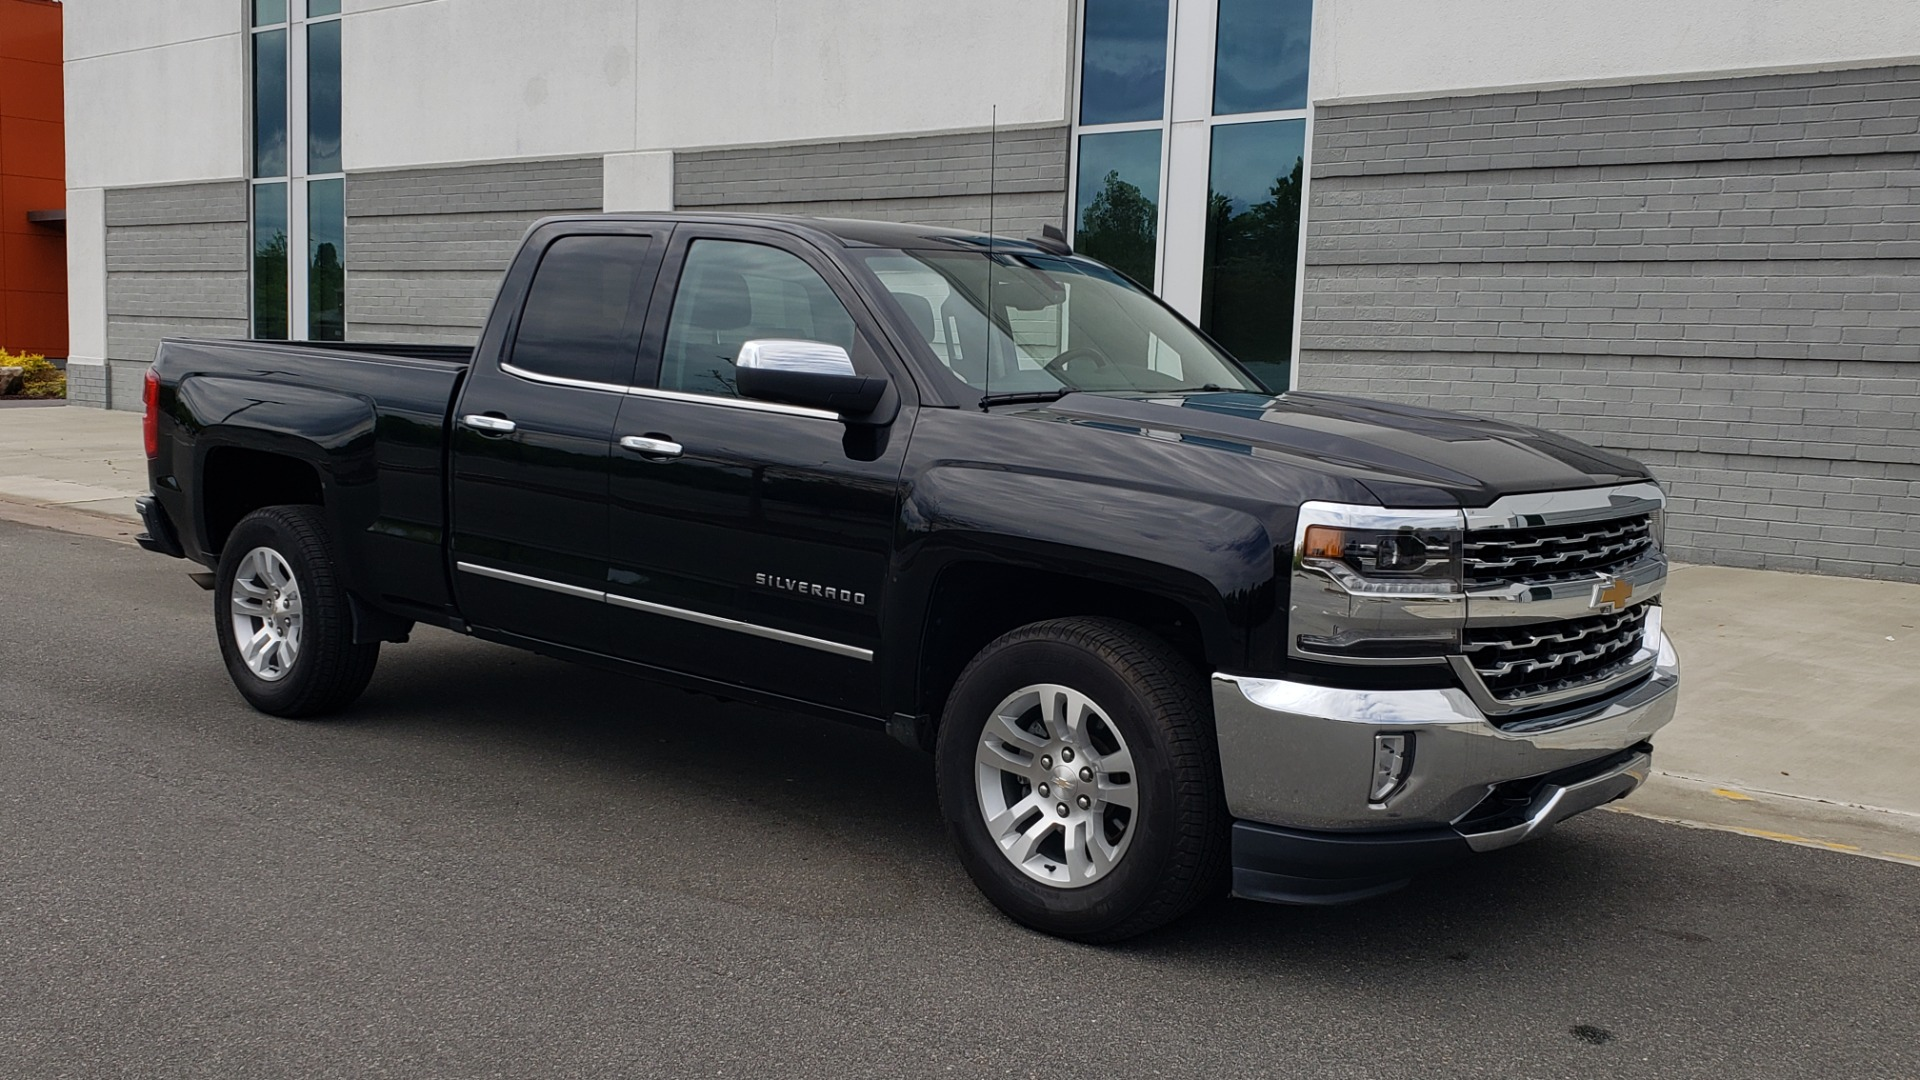 Used 2018 Chevrolet SILVERADO 1500 LTZ 1LZ / 5.3L V8 / 2WD / 6-SPD AUTO / DOUBLECAB / REARVIEW for sale Sold at Formula Imports in Charlotte NC 28227 6